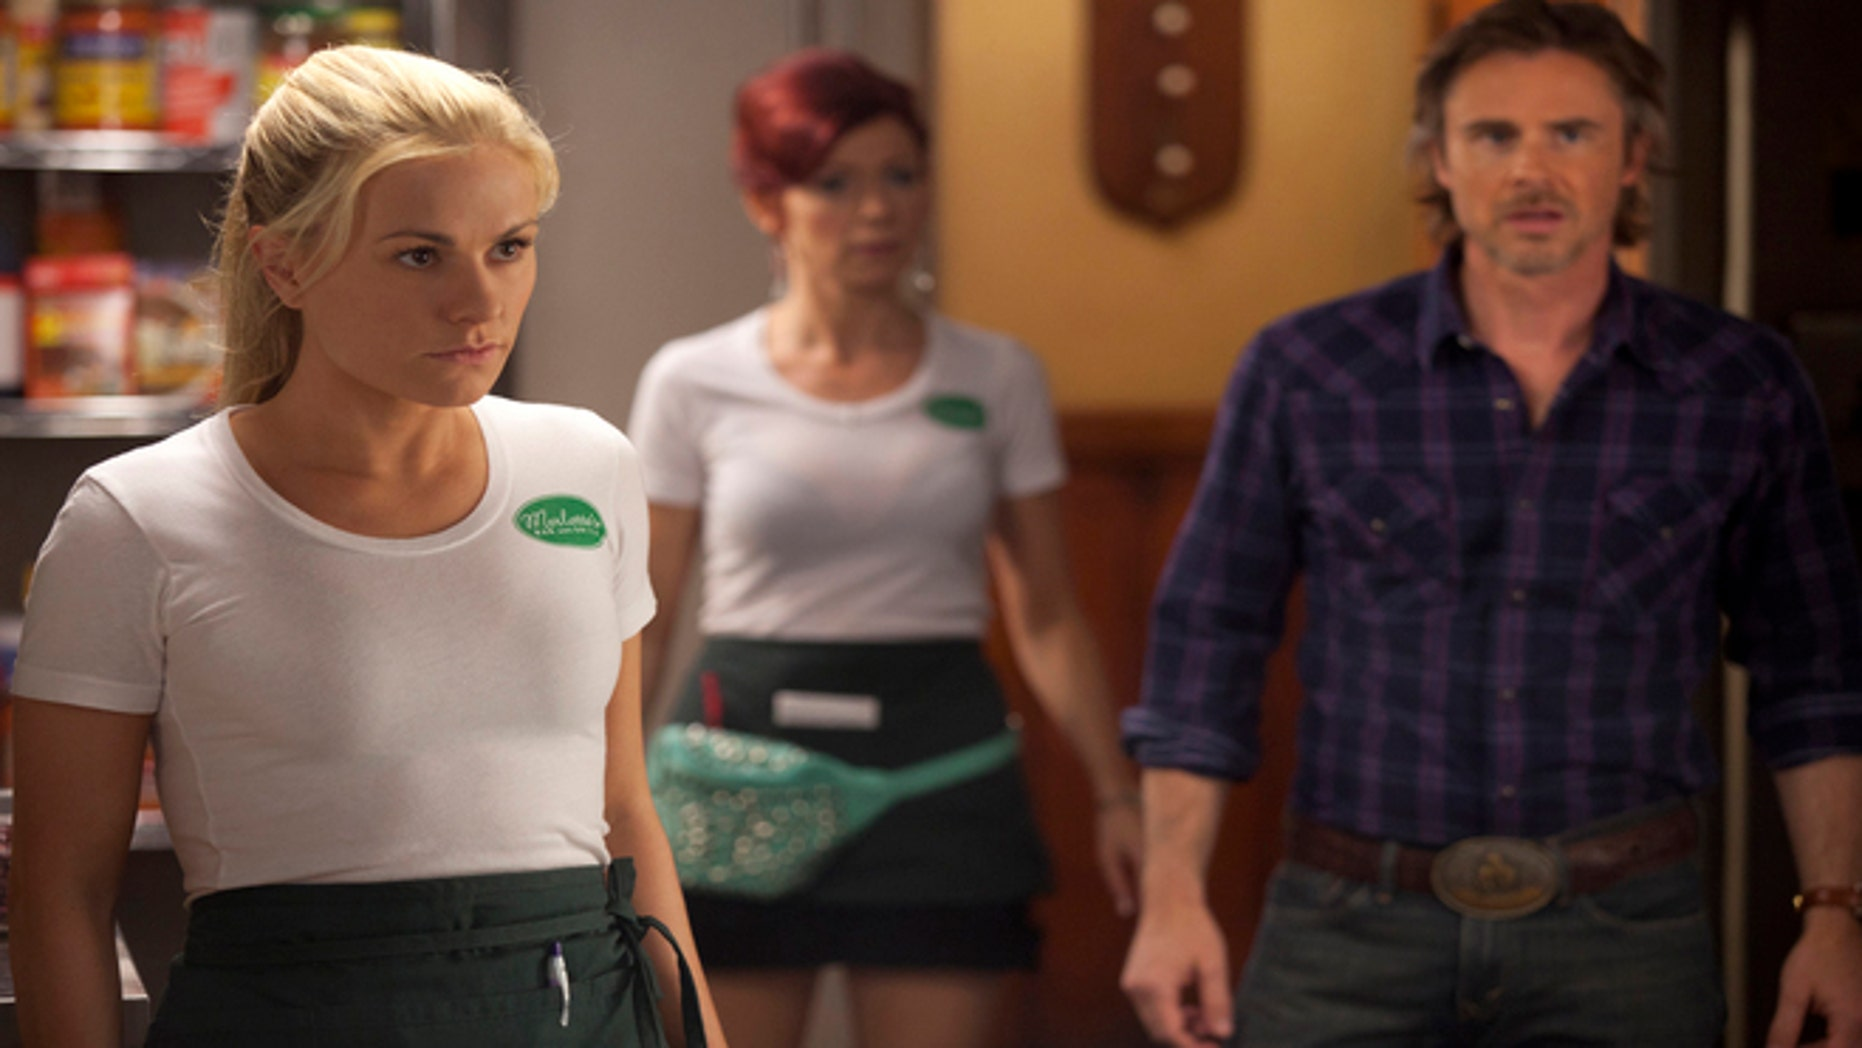 This image released by HBO shows, from left, Anna Paquin as Sookie Stackhouse, Carrie Preston as Arlene Fowler, Sam Trammell as Sam Merlotte in a scene from 'True Blood.'